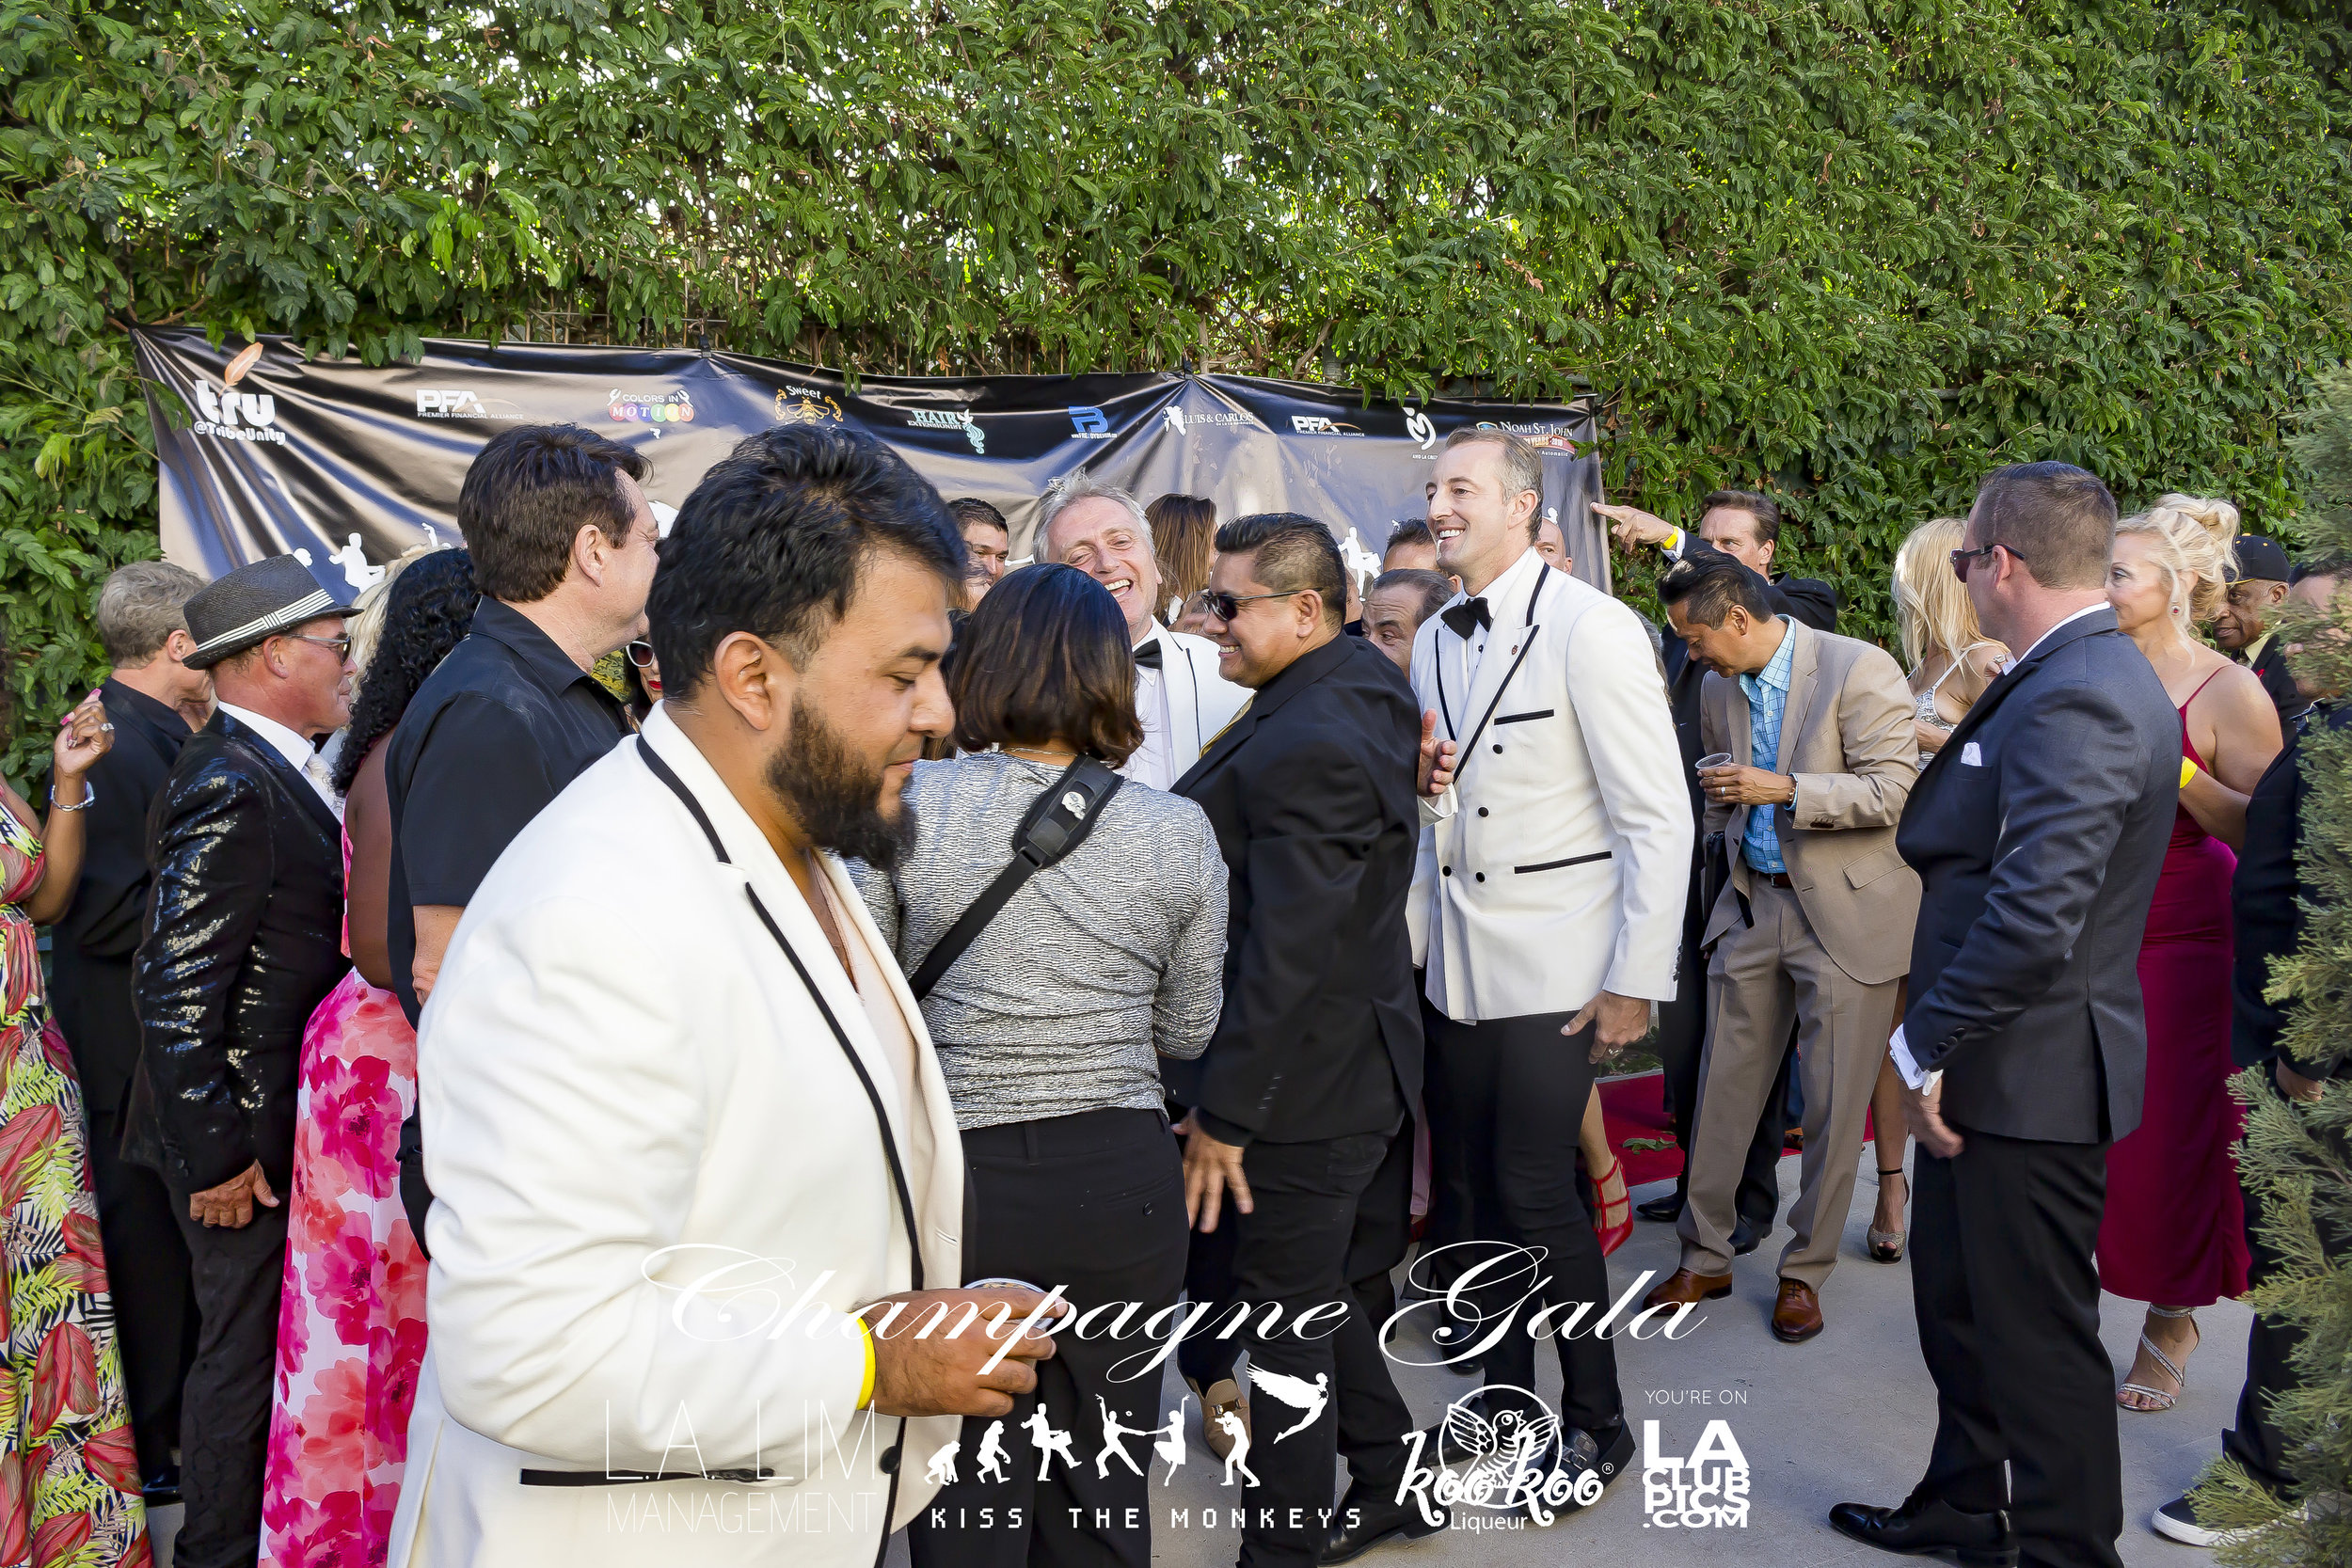 Kiss The Monkeys - Champagne Gala - 07-21-18_68.jpg